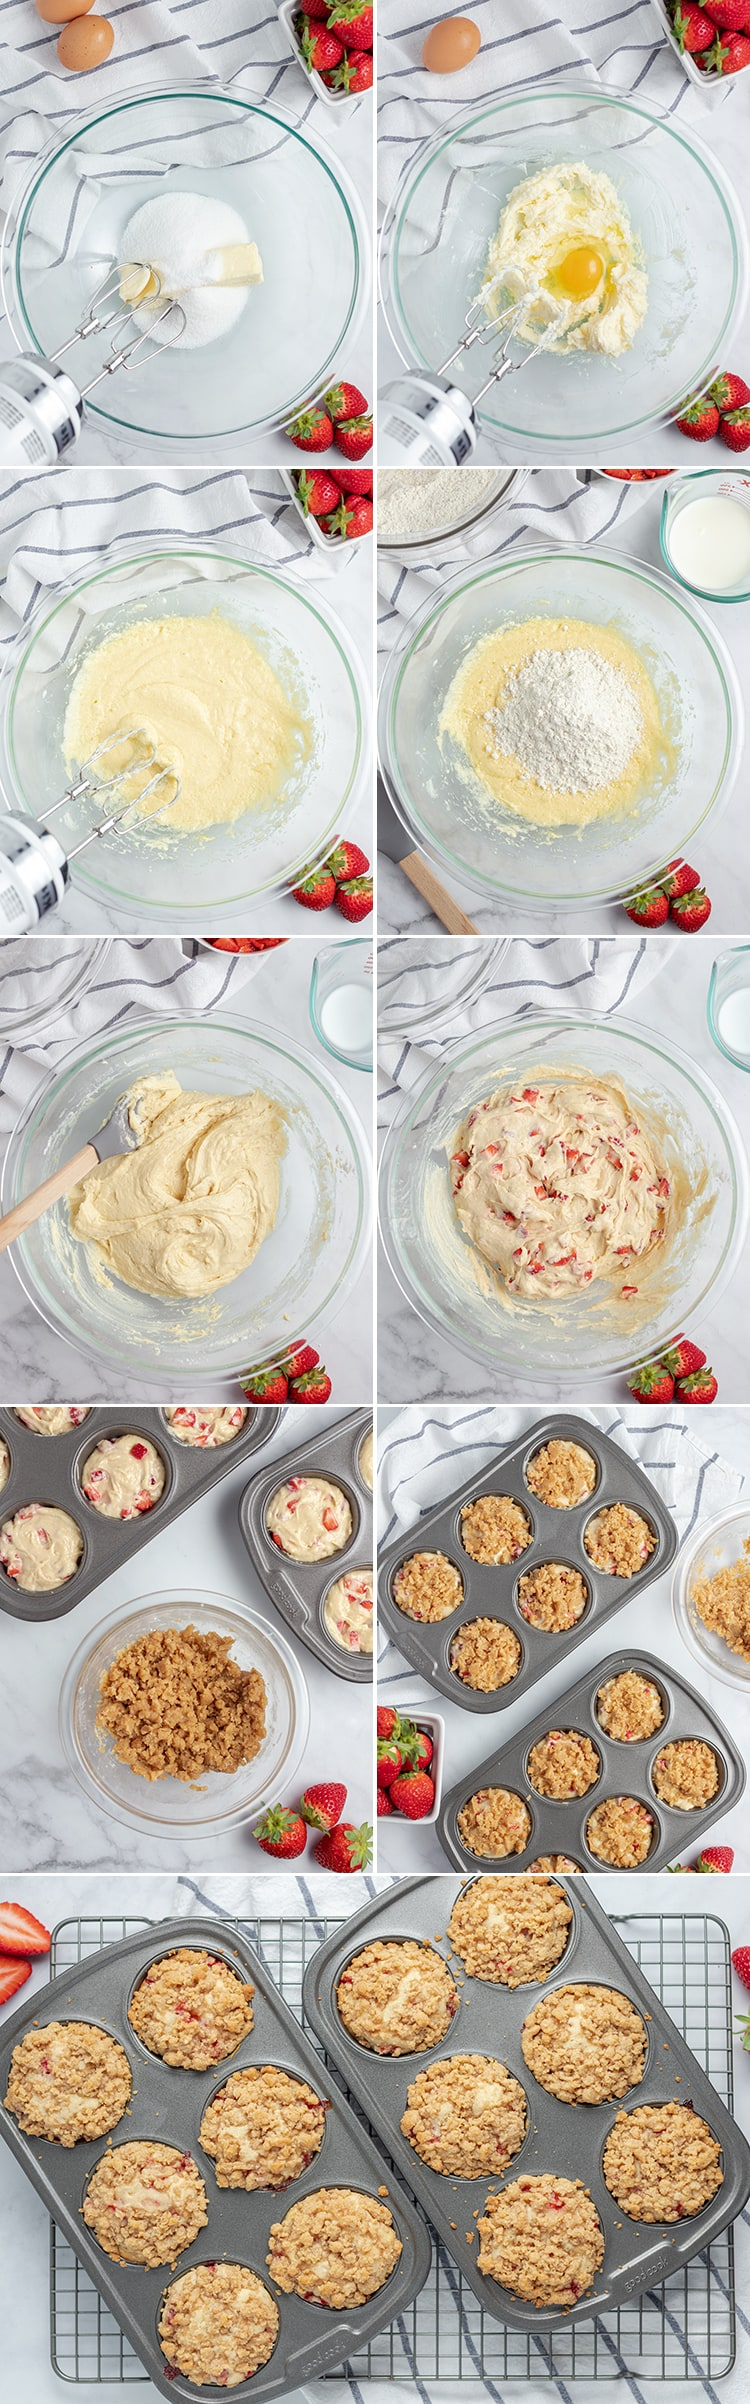 How to make strawberry muffins with step by step photos